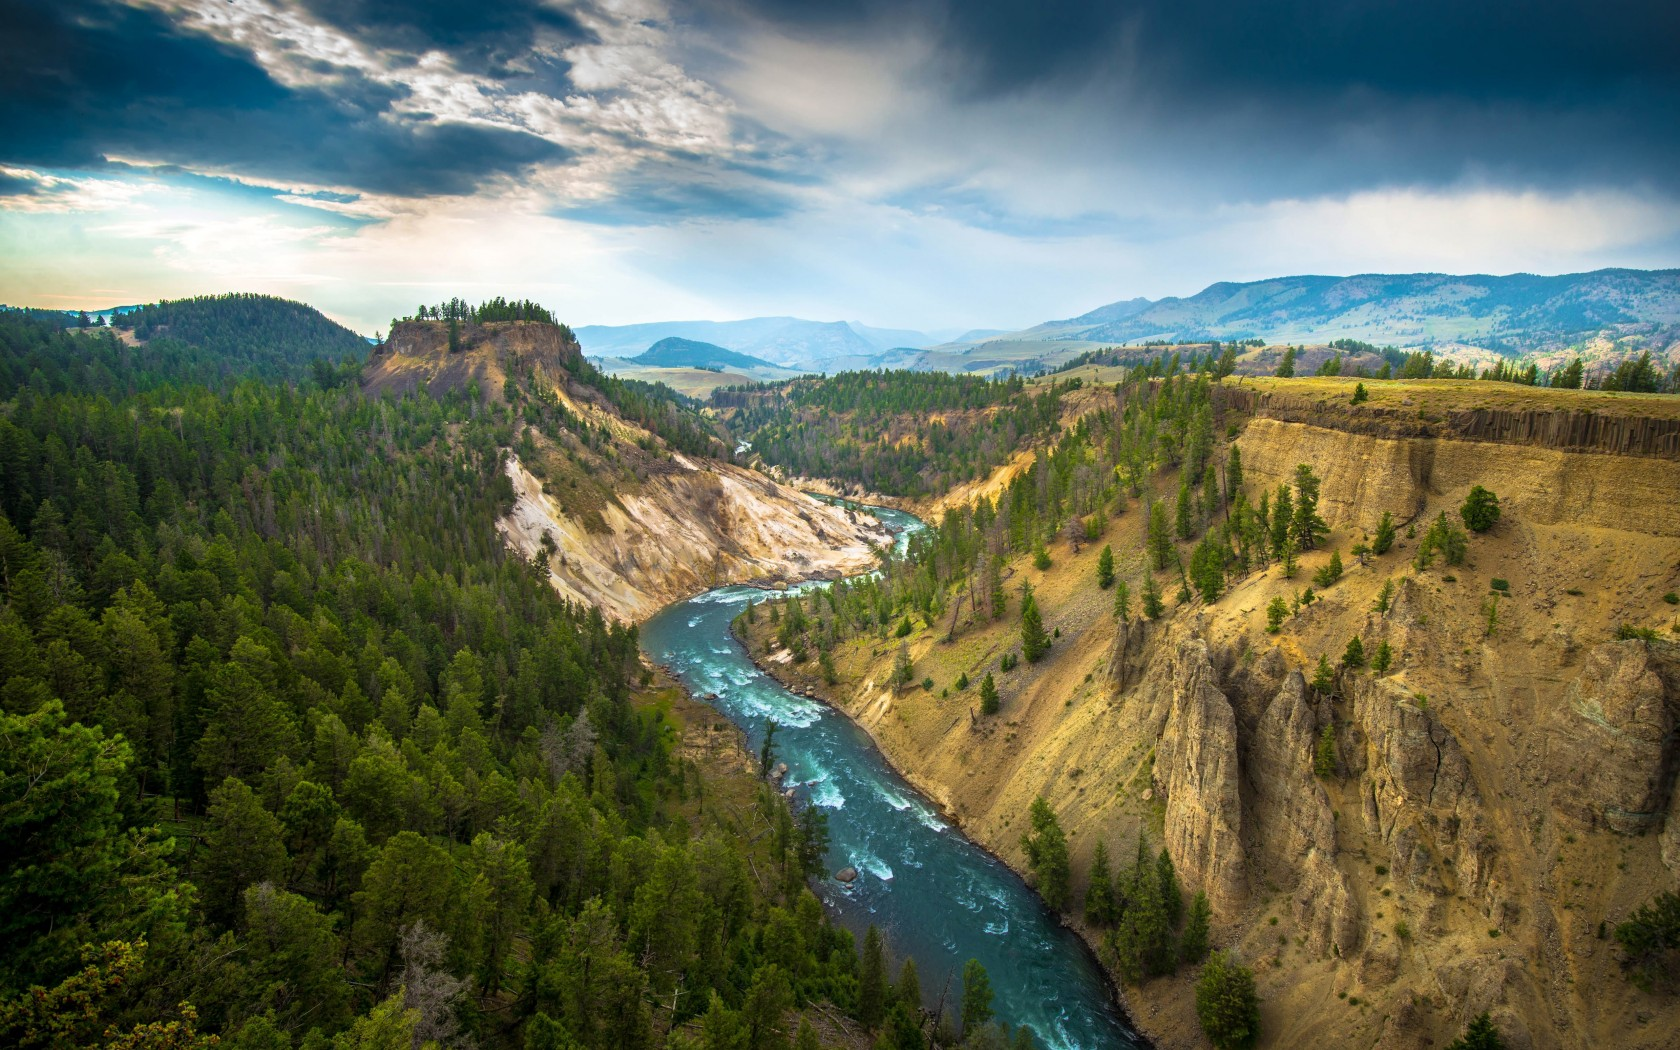 The River, Grand Canyon of Yellowstone National Park, USA Wallpaper for Desktop 1680x1050